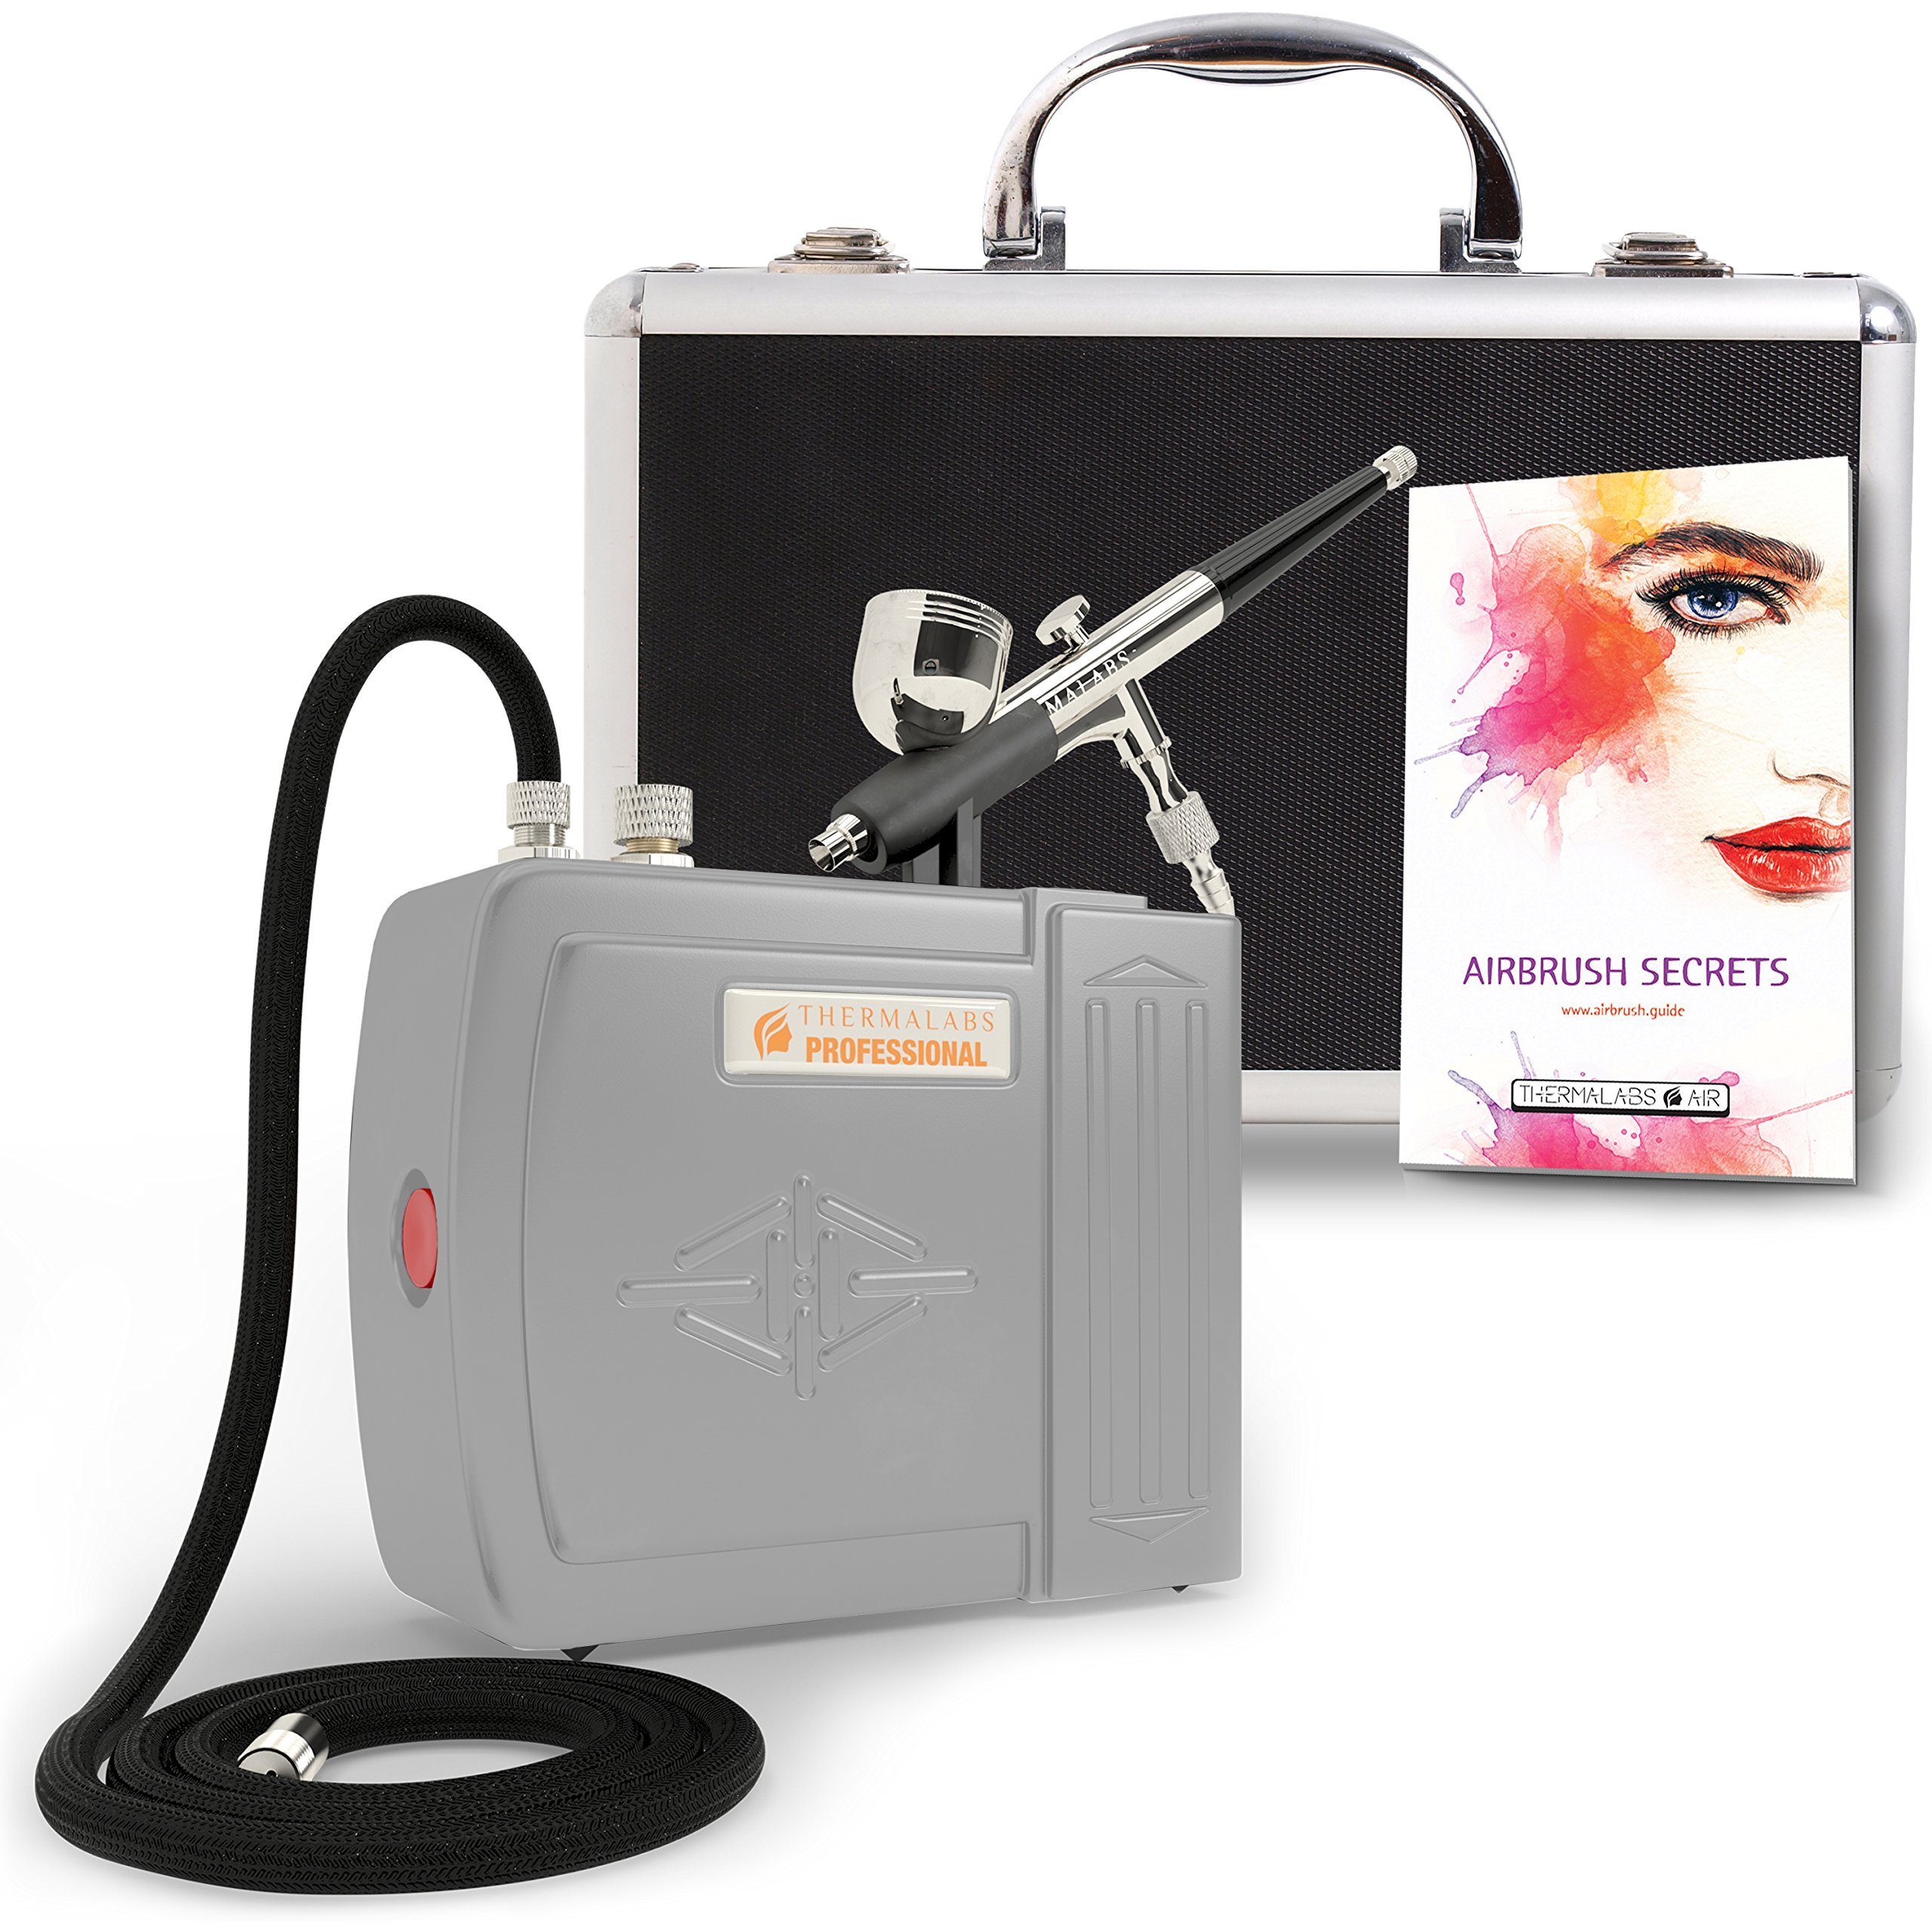 The Complete Airbrush Makeup, Cosmetic and Tattoo Professional Spray Gun Mini Compressor Kit for Multi Purpose Air Brushing: Make up, Body Paint, Temporary Tattoos, Nail Art Paints Machine and more by Thermalabs